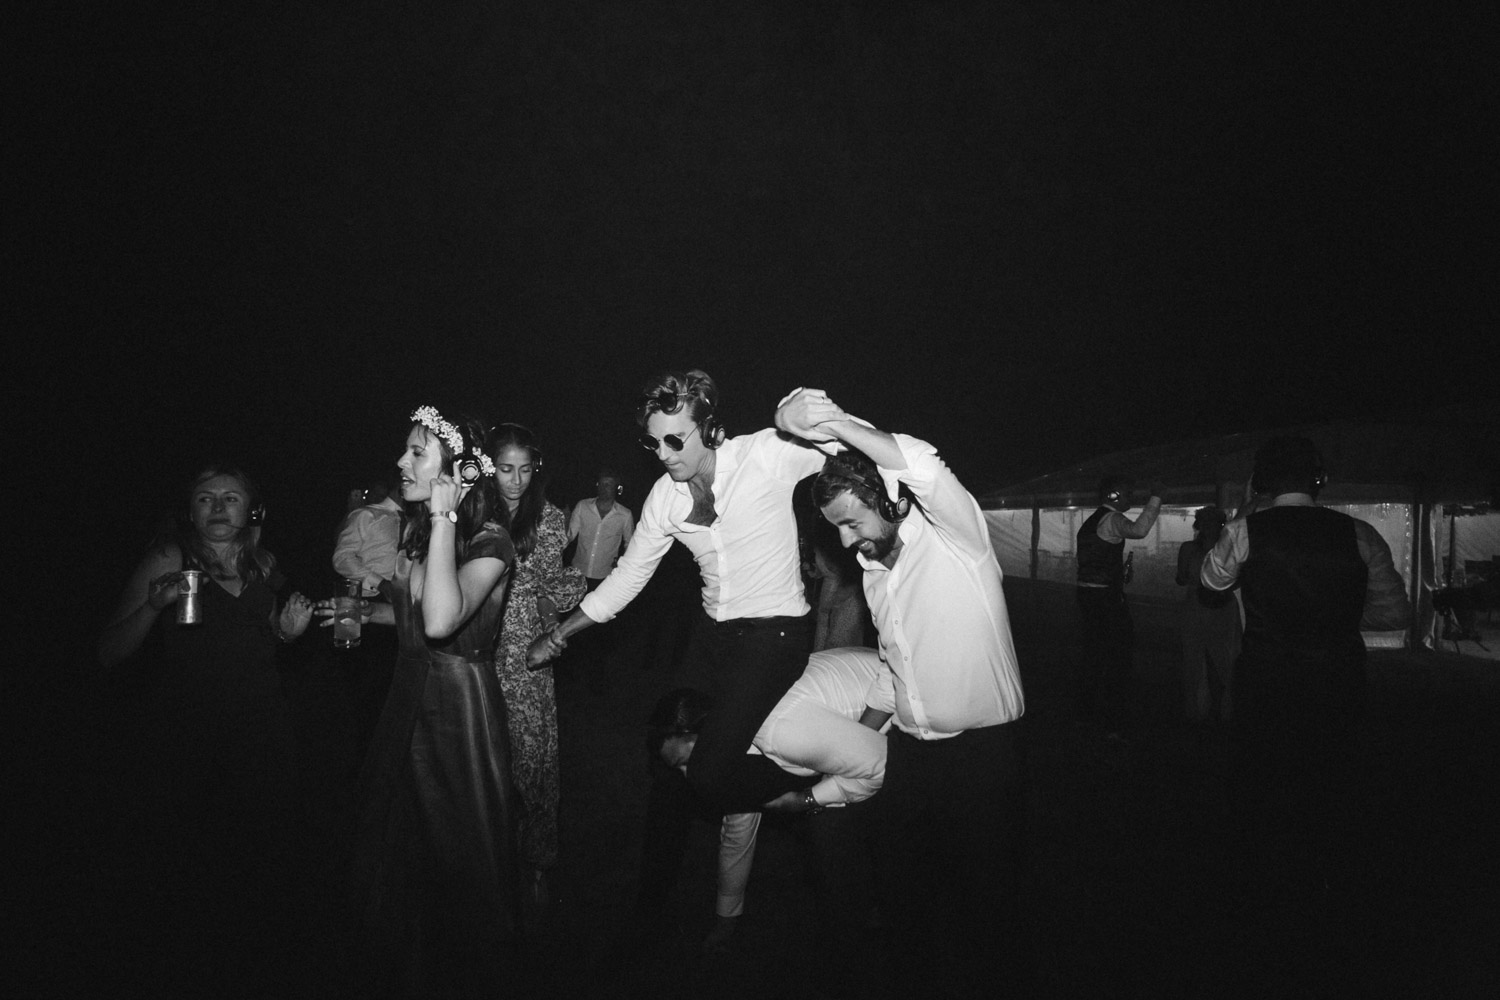 guests dancing on the clifftop after midnight